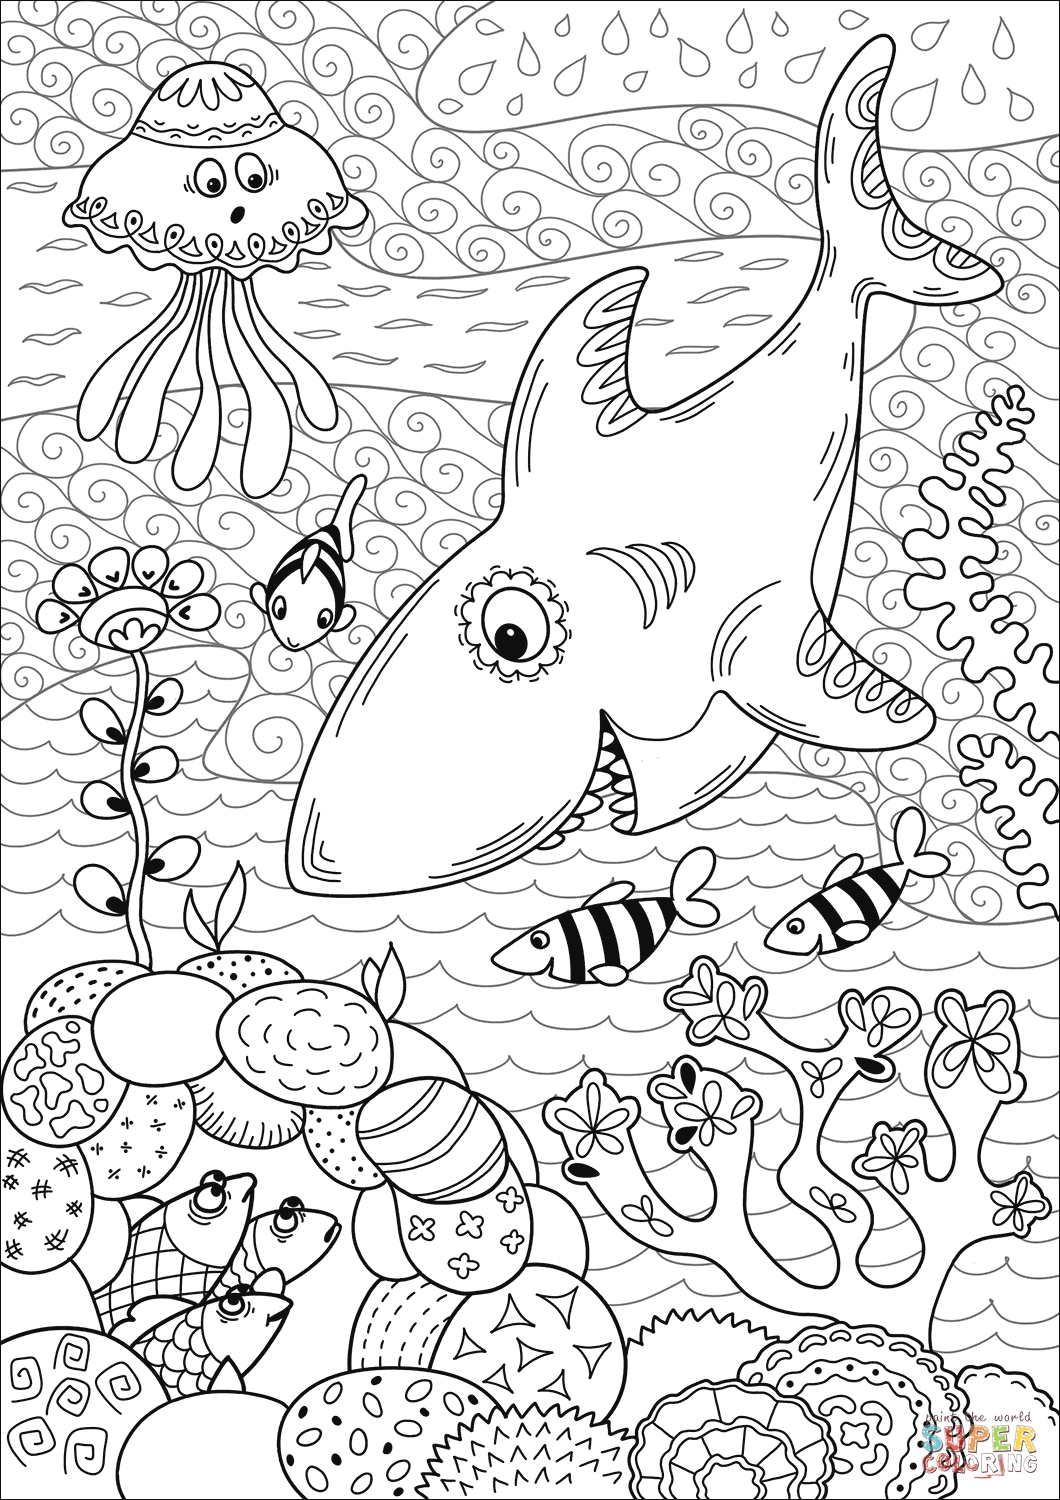 Printable Shark Hunting In Coral Reef Coloring Page Free Book To Print Of Pages